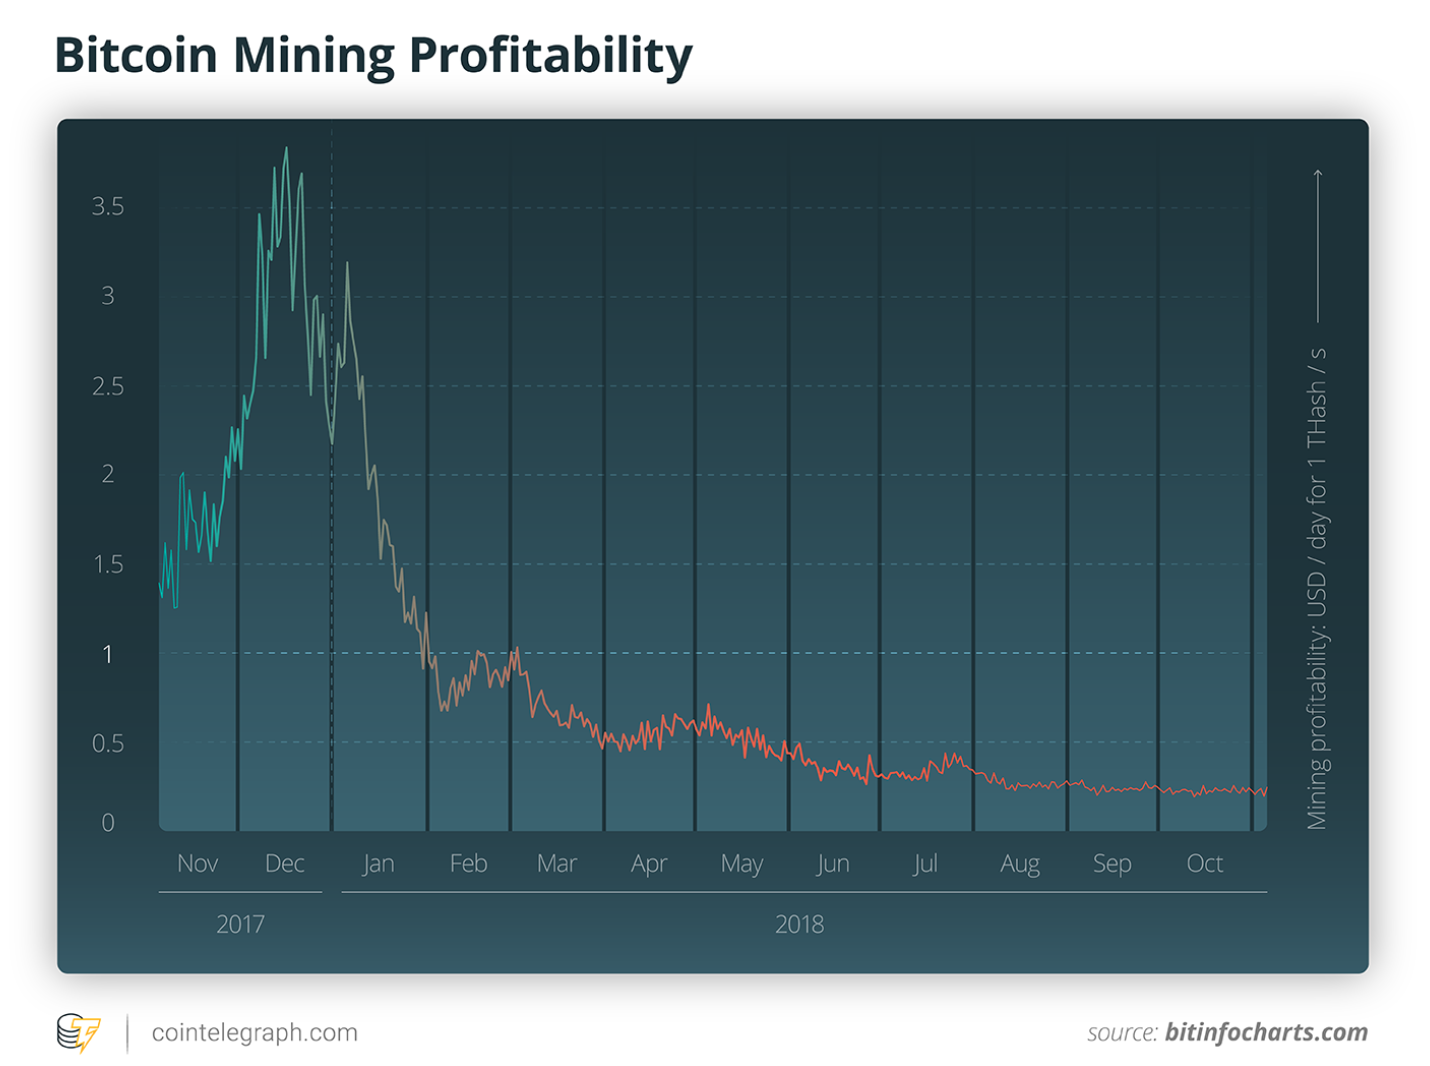 Graph showing the how the profitability of Bitcoin mining plummeted during 2018